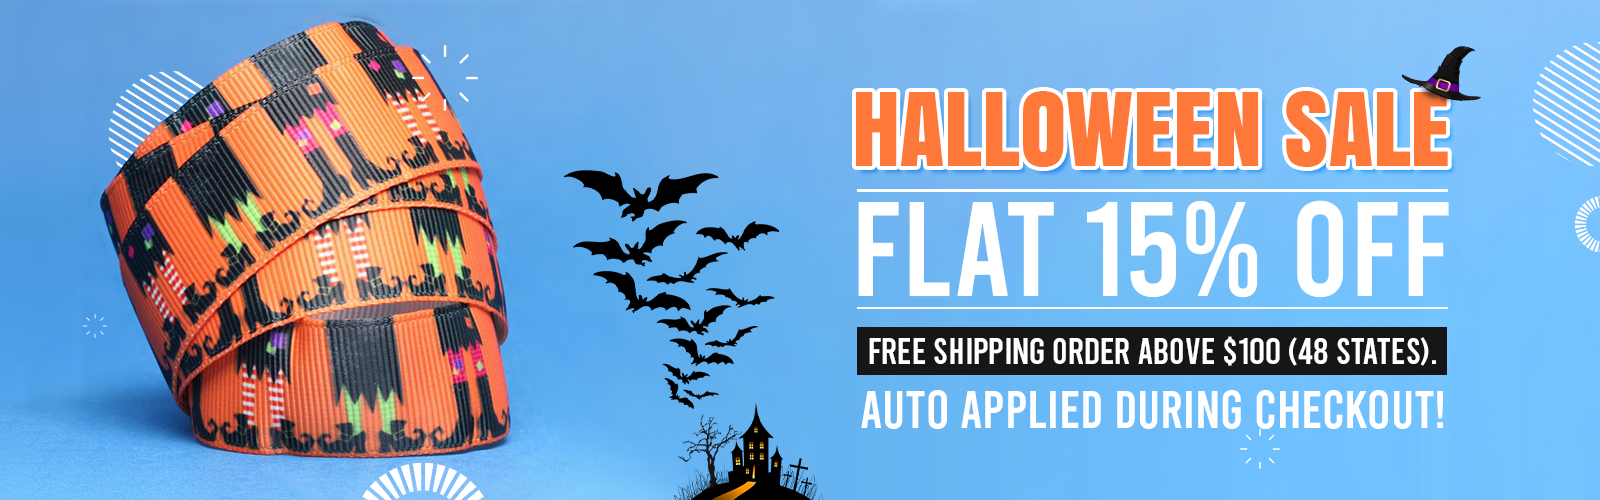 FLAT 15% OFF Sitewide | Free Shipping Order Above $100 (48 States)* Auto Applied During Checkout!